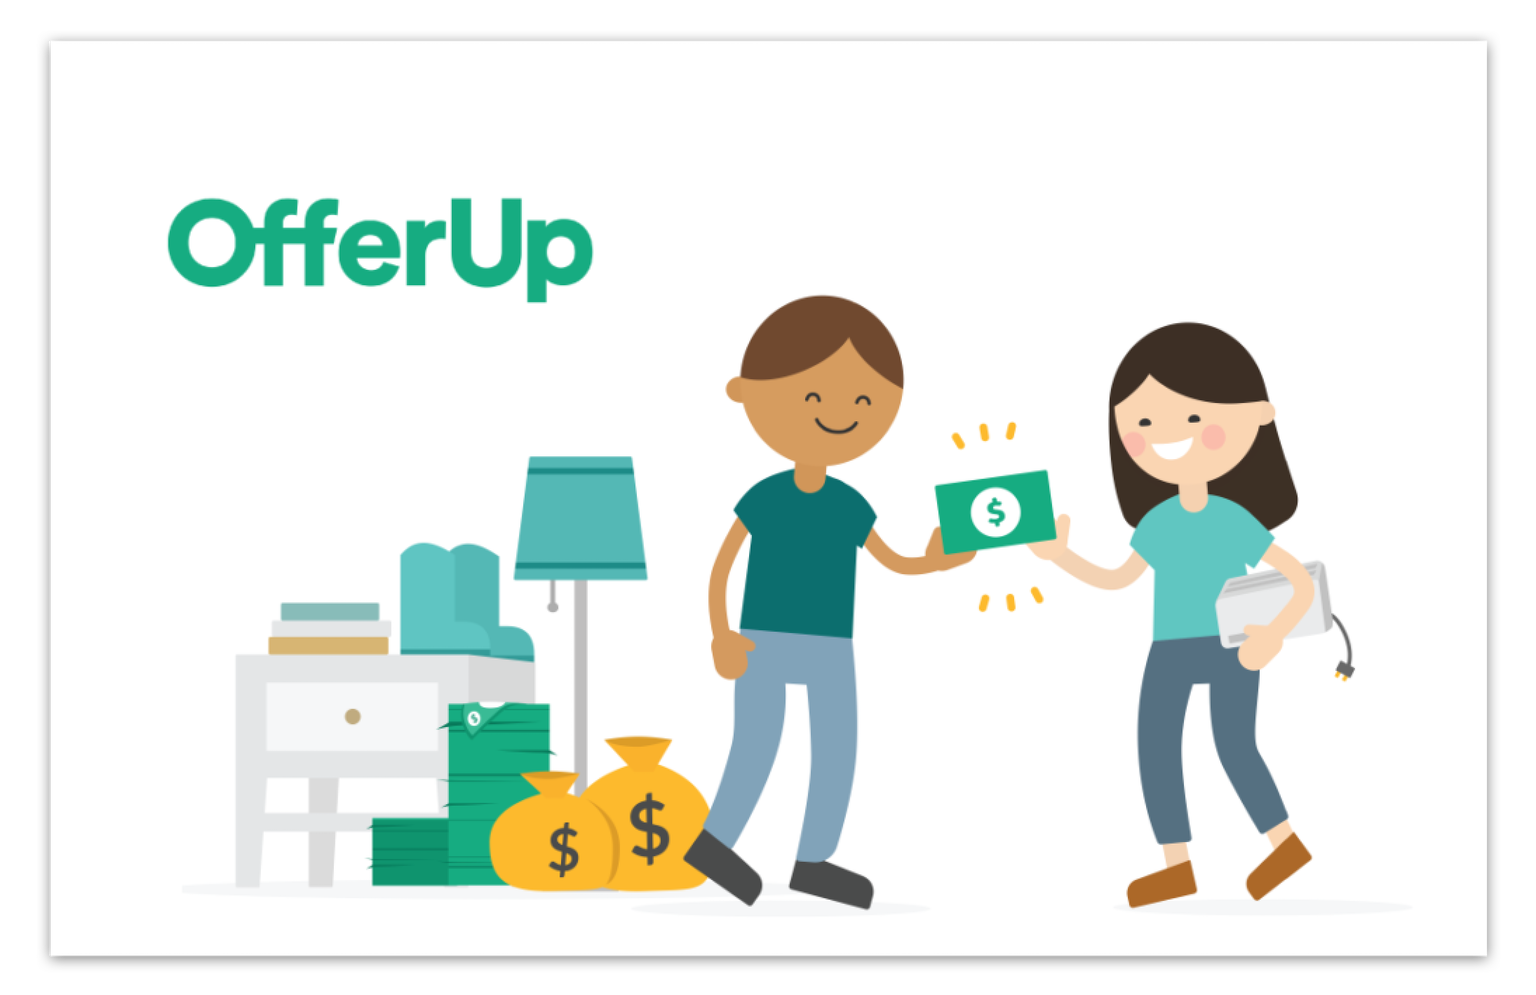 illustrated graphic of two people exchanging items for money with OfferUp branding